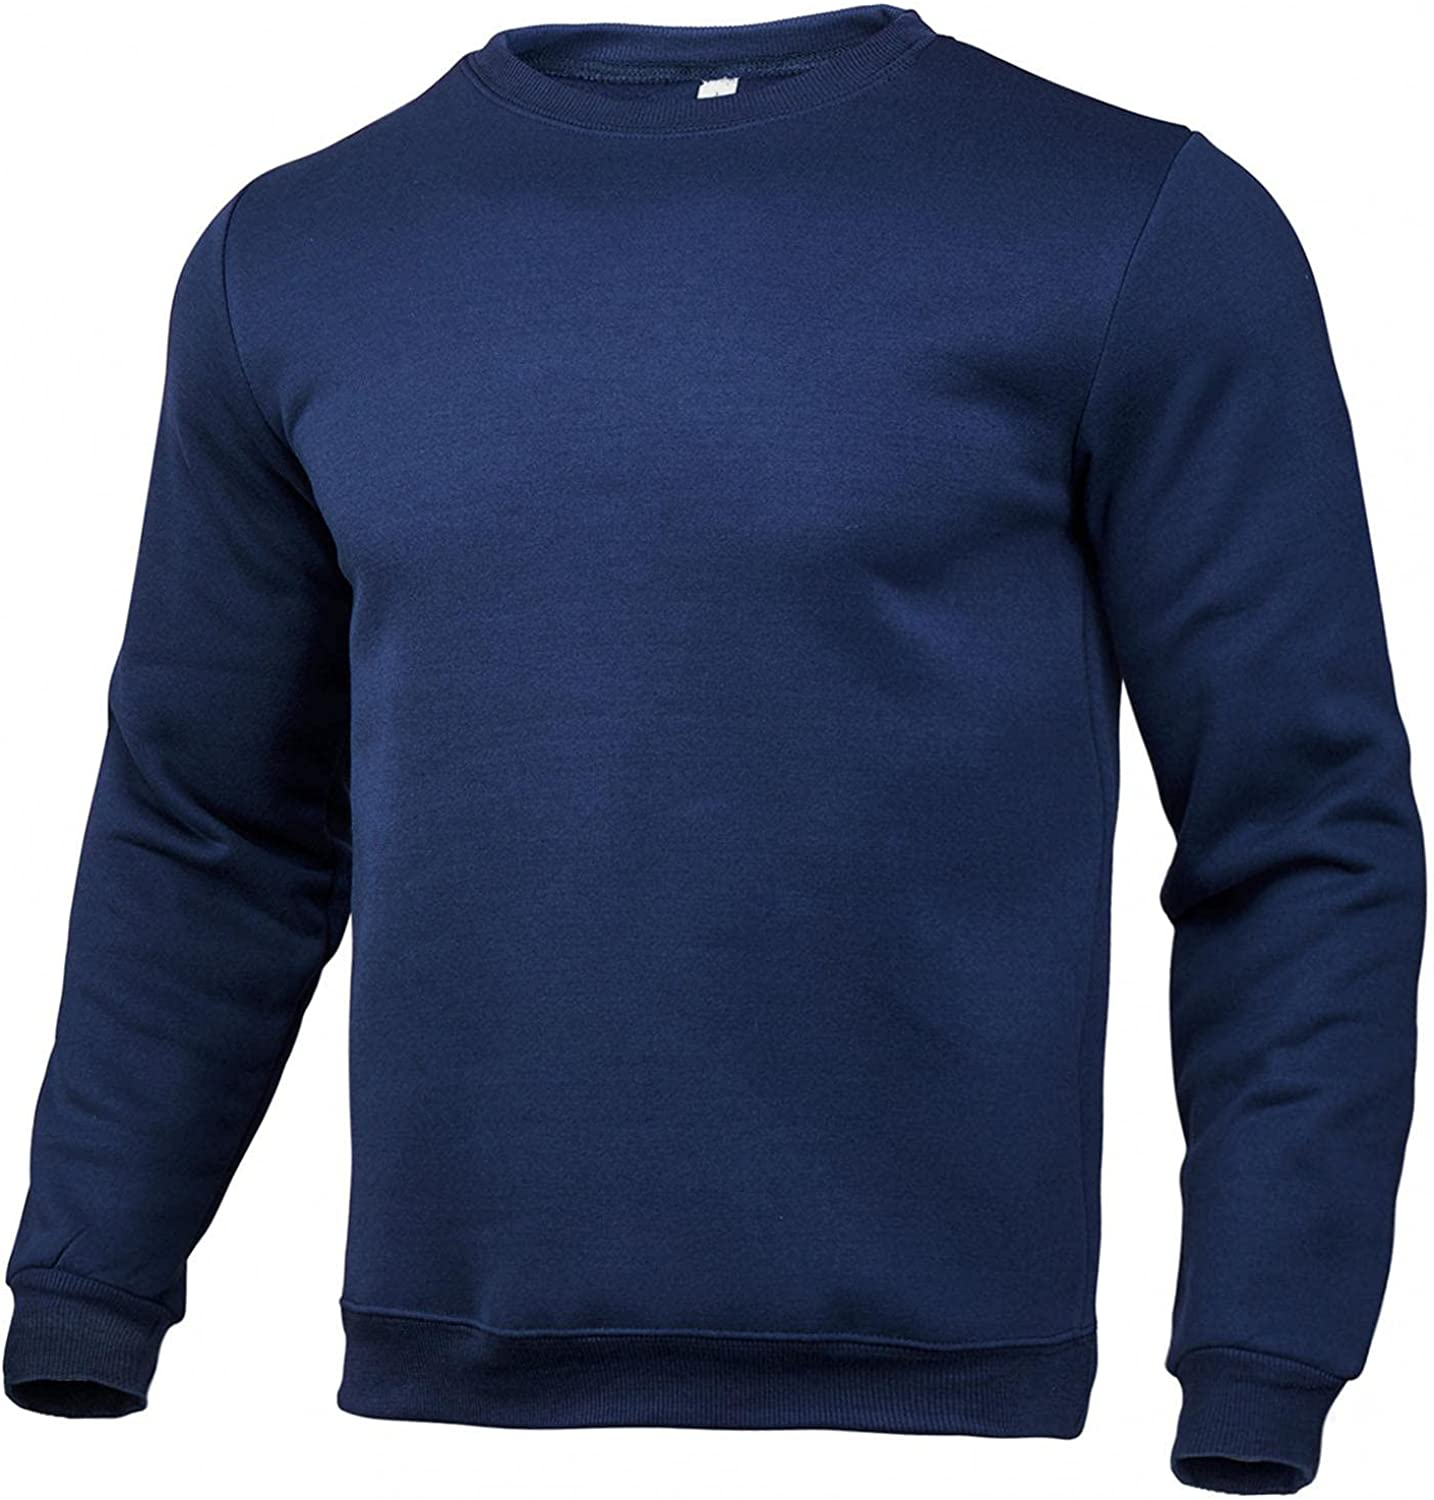 Qsctys Pullover Sweatshirts for Men Design Crewneck Solid Color Black White Lightweight Casual Fall Winter Fashion T-Shirts